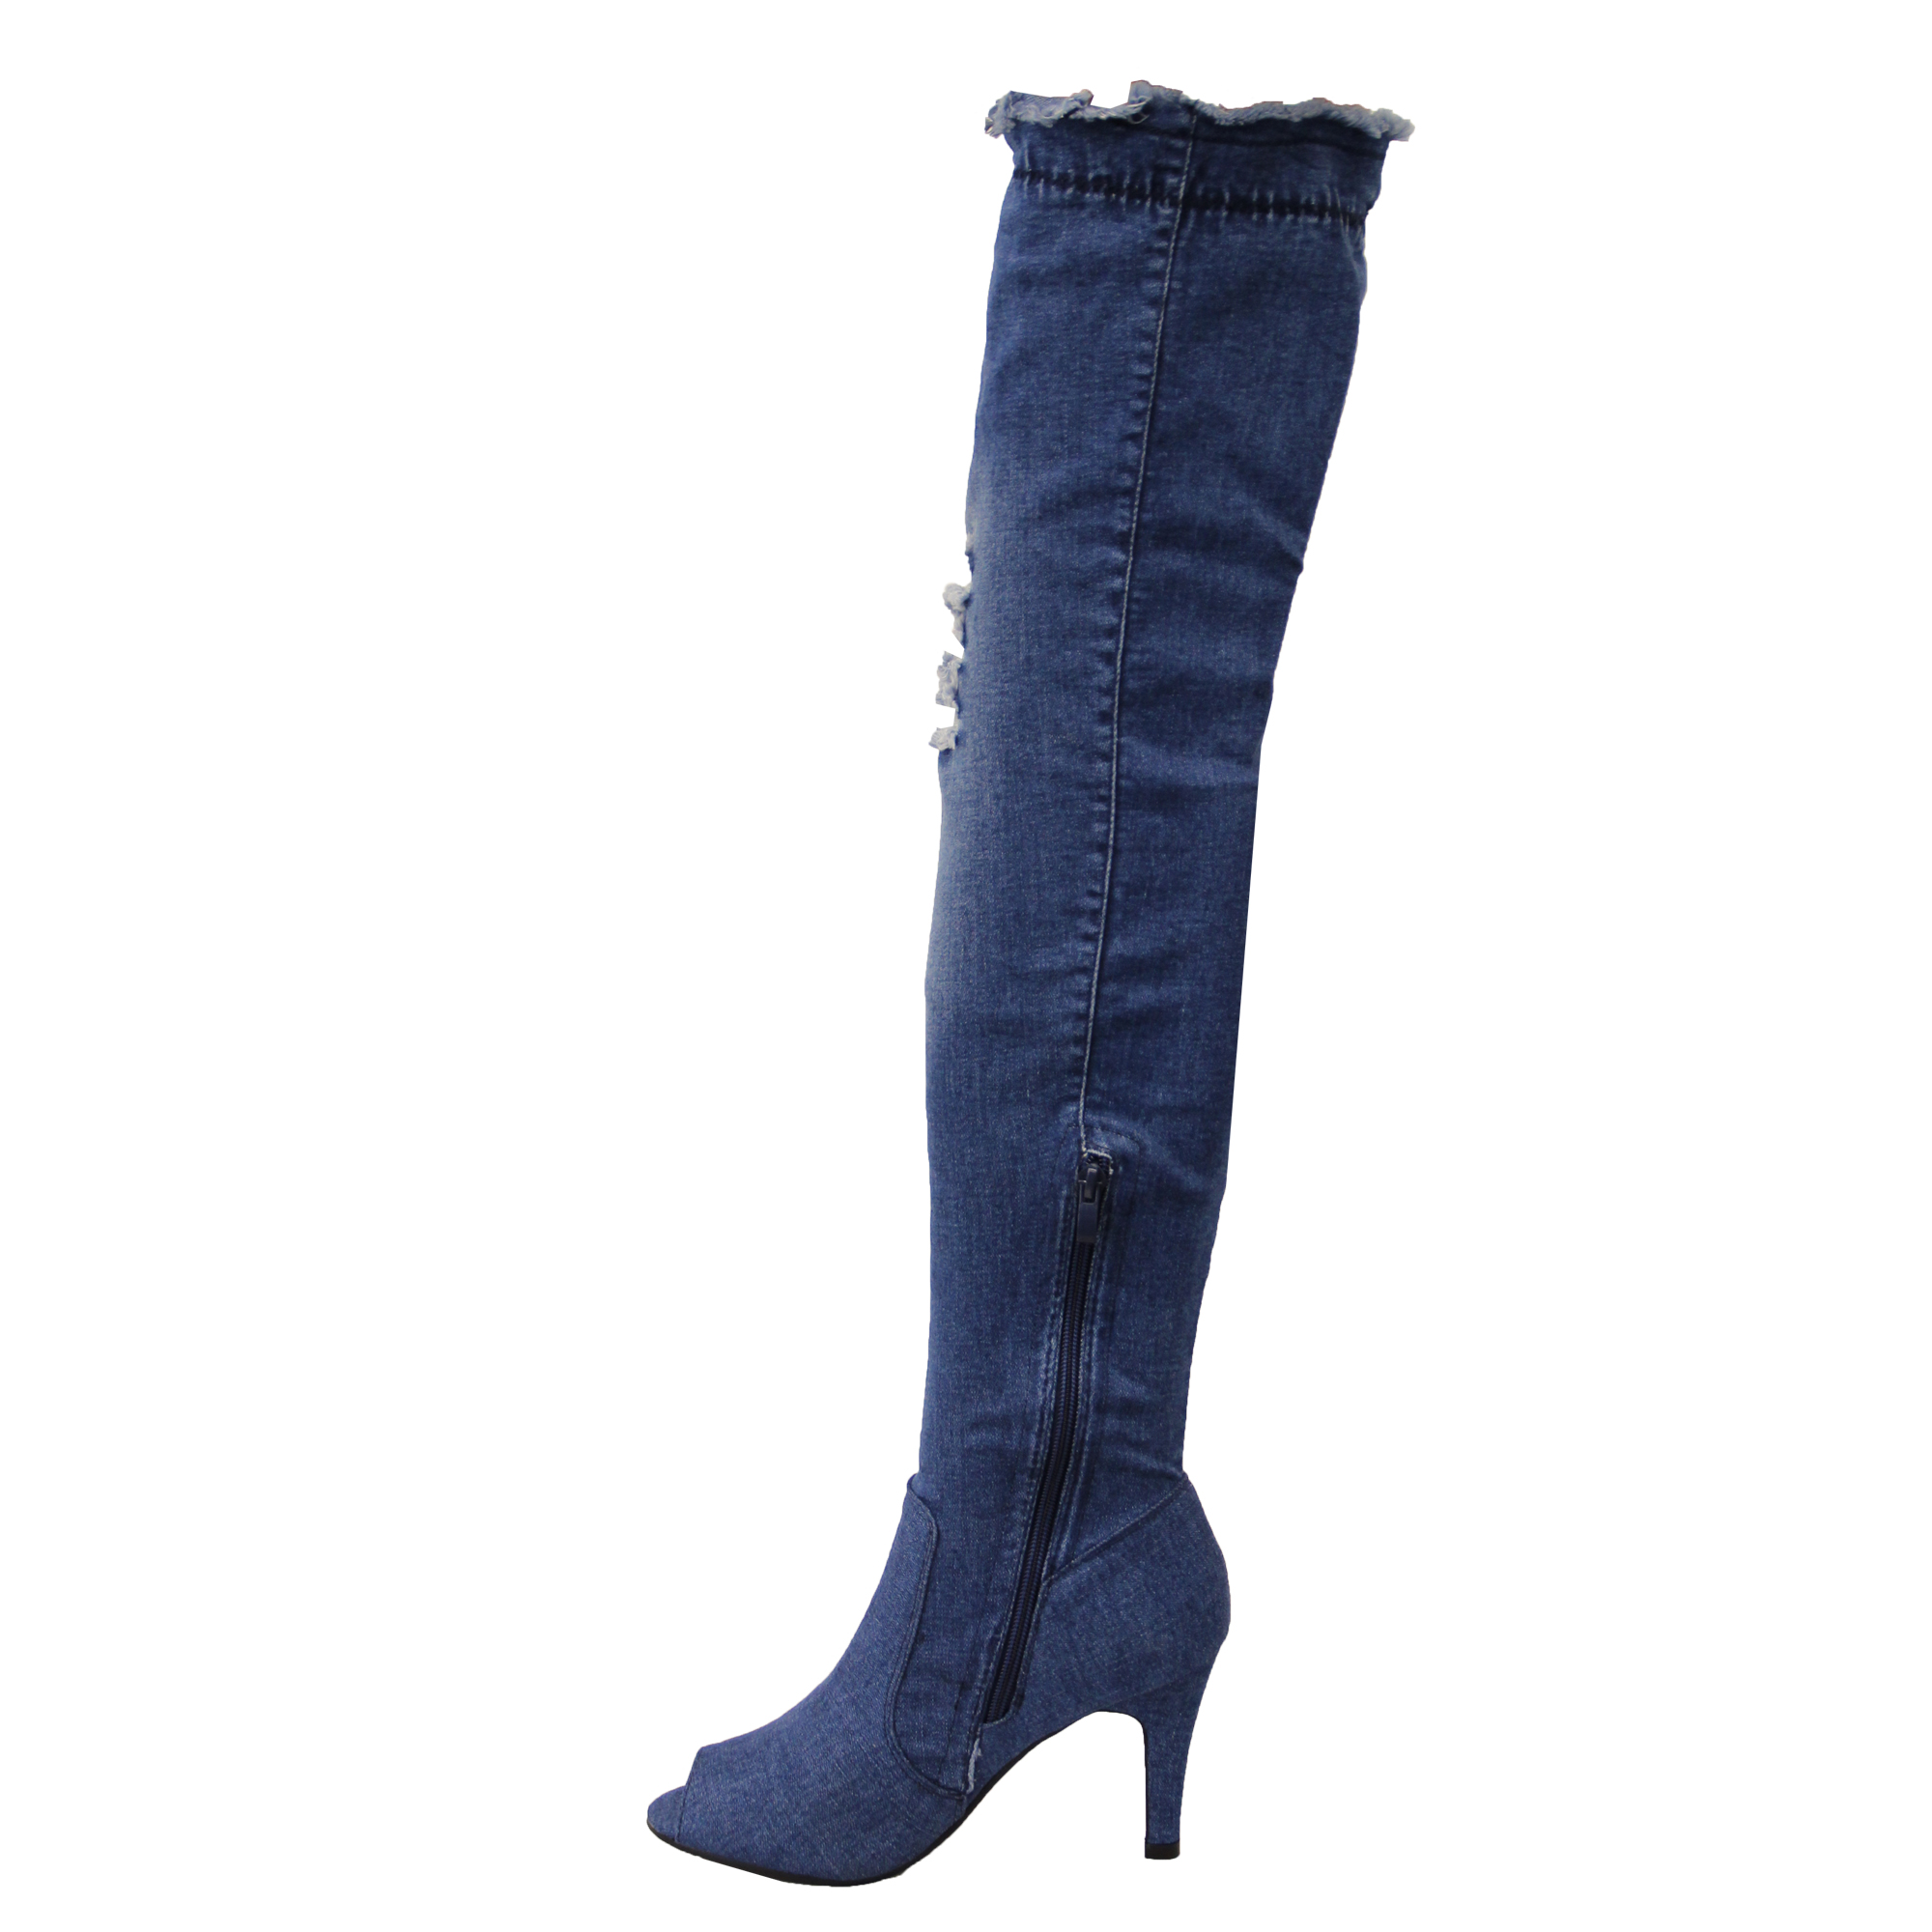 81c0d796cc6 Details about Ladies Over The Knee Denim Boots Womens Ripped Peeptoe Thigh  High Stiletto Heel